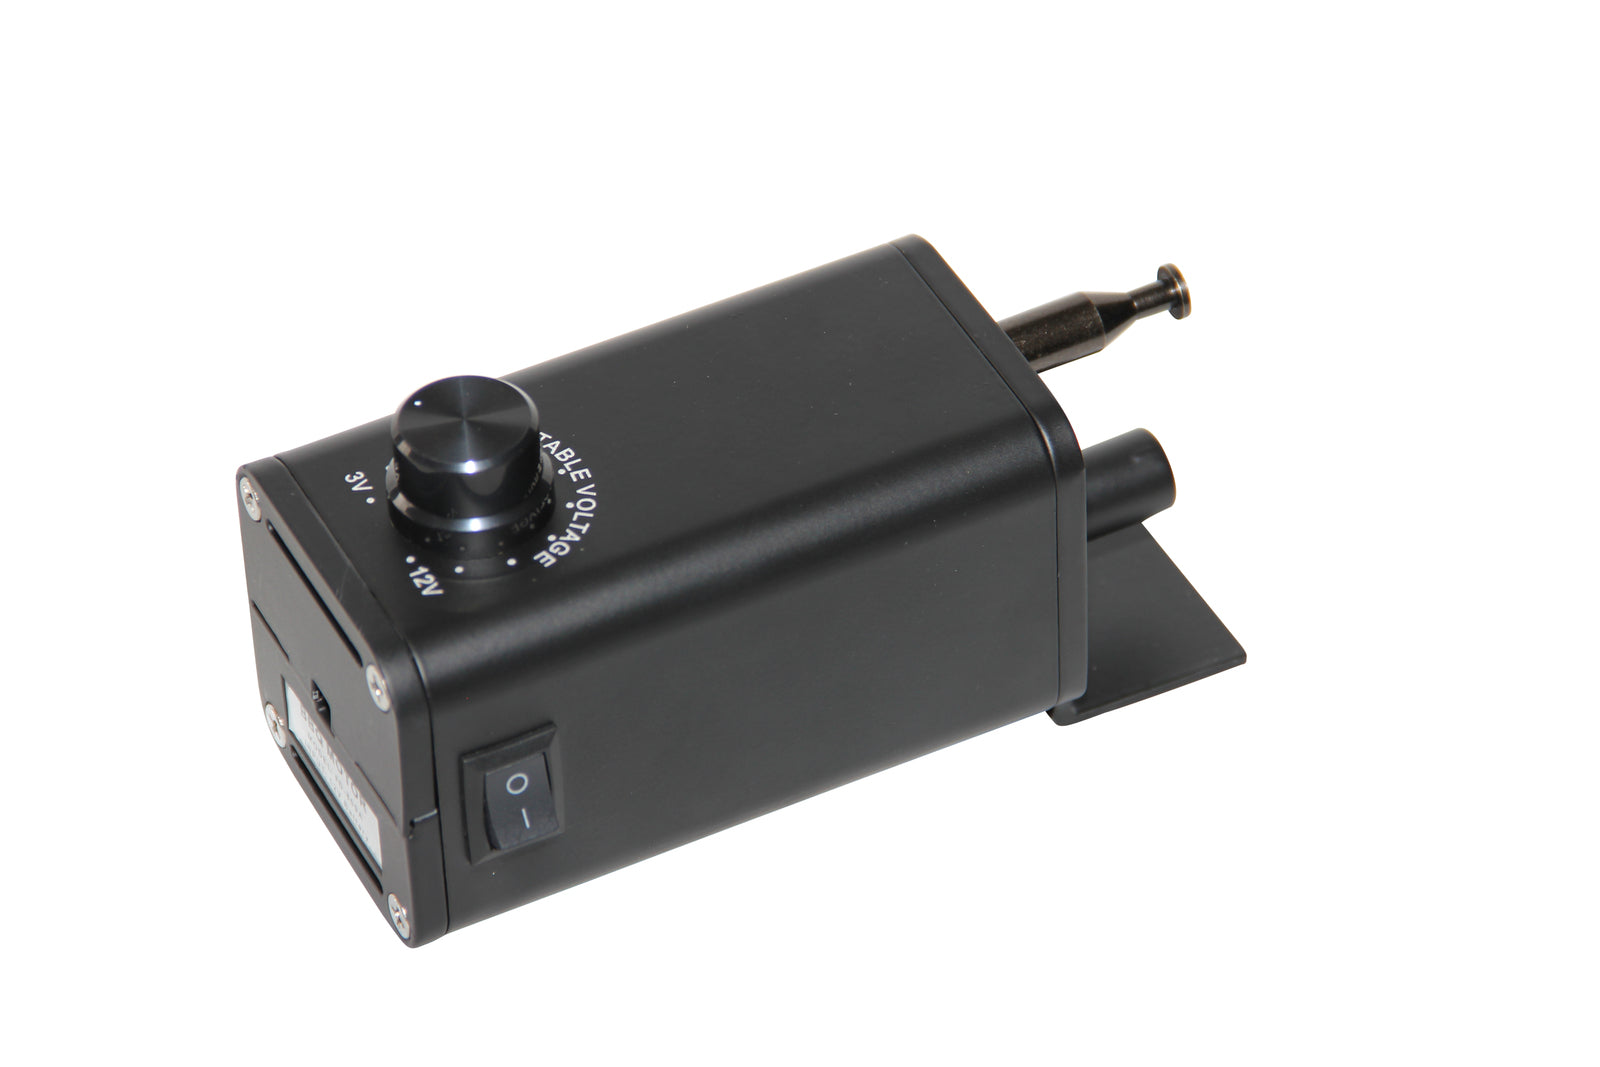 240V/12V Motor - 10kg Capacity Adjustable Speed